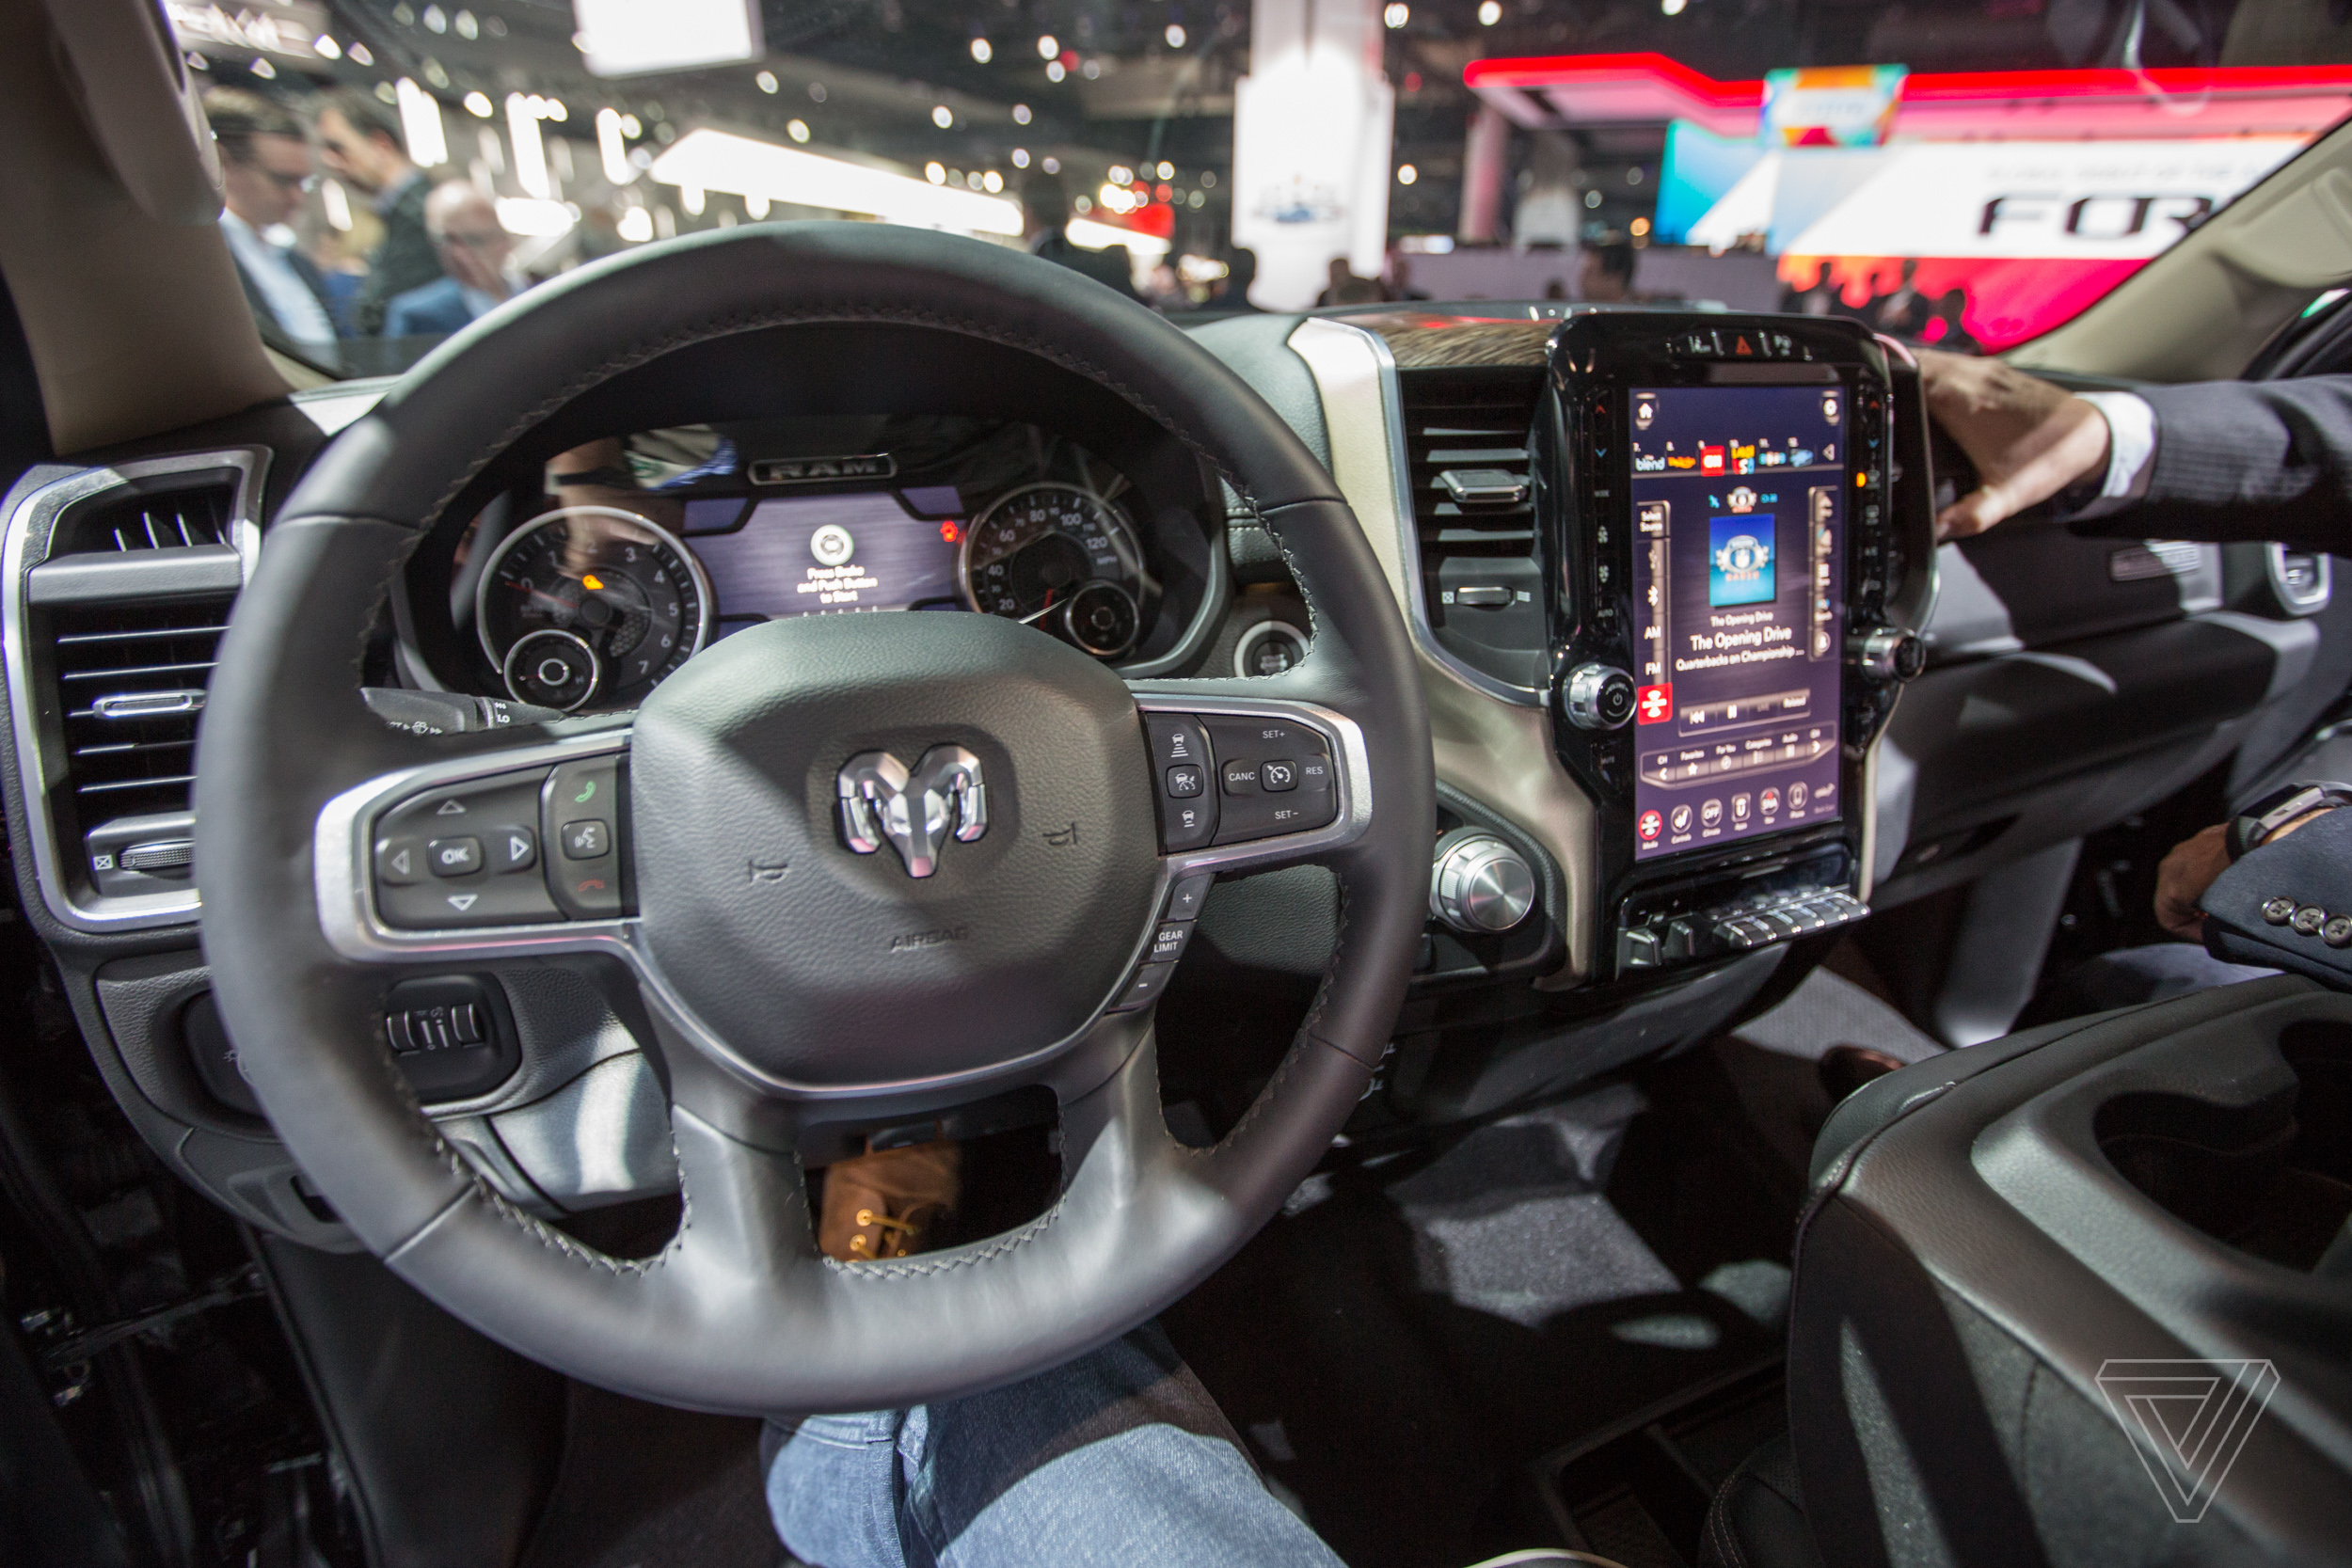 The New 2019 Ram 1500 Has A Massive 12 Inch Touchscreen Display 2012 Dodge Stereo Upgrade 1 Of 31